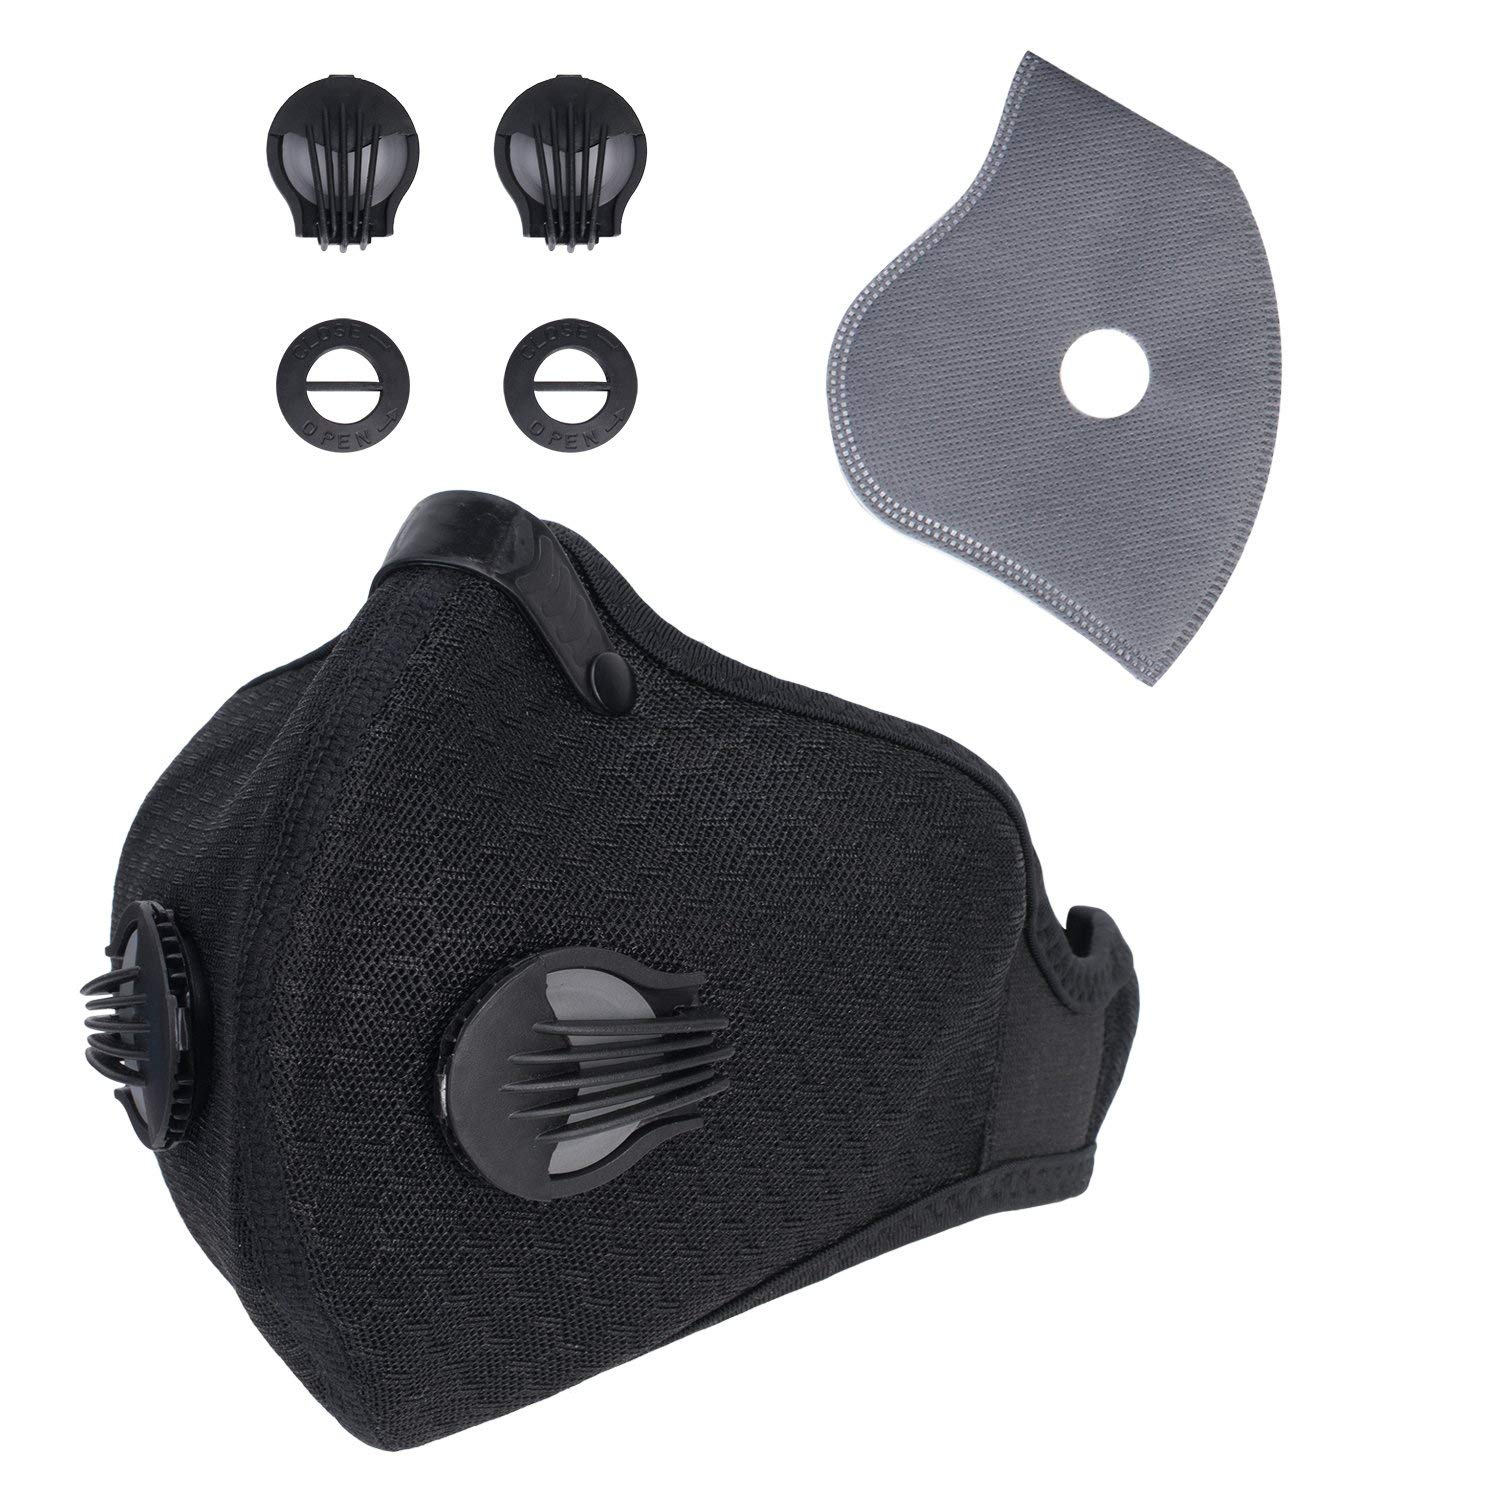 Dustproof Mask Activated Carbon Dust Filer Masks Air Filtration Safety Mesh Face Mask for Pollen Allergy, PM2.5, Running, Cycling, Ski,Mowing,Outdoor Activities with Bonus Cotton Filter & Valves